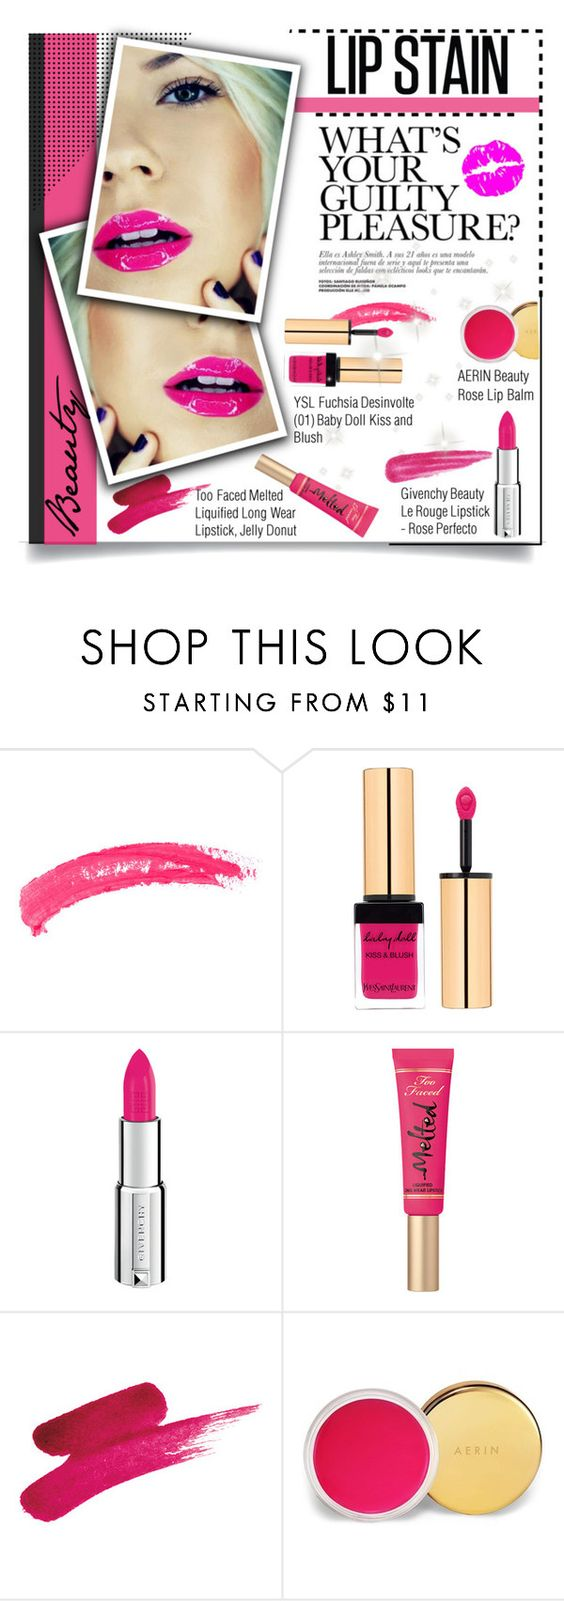 """""""Pucker Up: Lip Stains for Spring"""" by mada-malureanu ❤ liked on Polyvore featuring beauty, Topshop, Yves Saint Laurent, Givenchy, Too Faced Cosmetics, AERIN, Betsey Johnson and lipstain"""